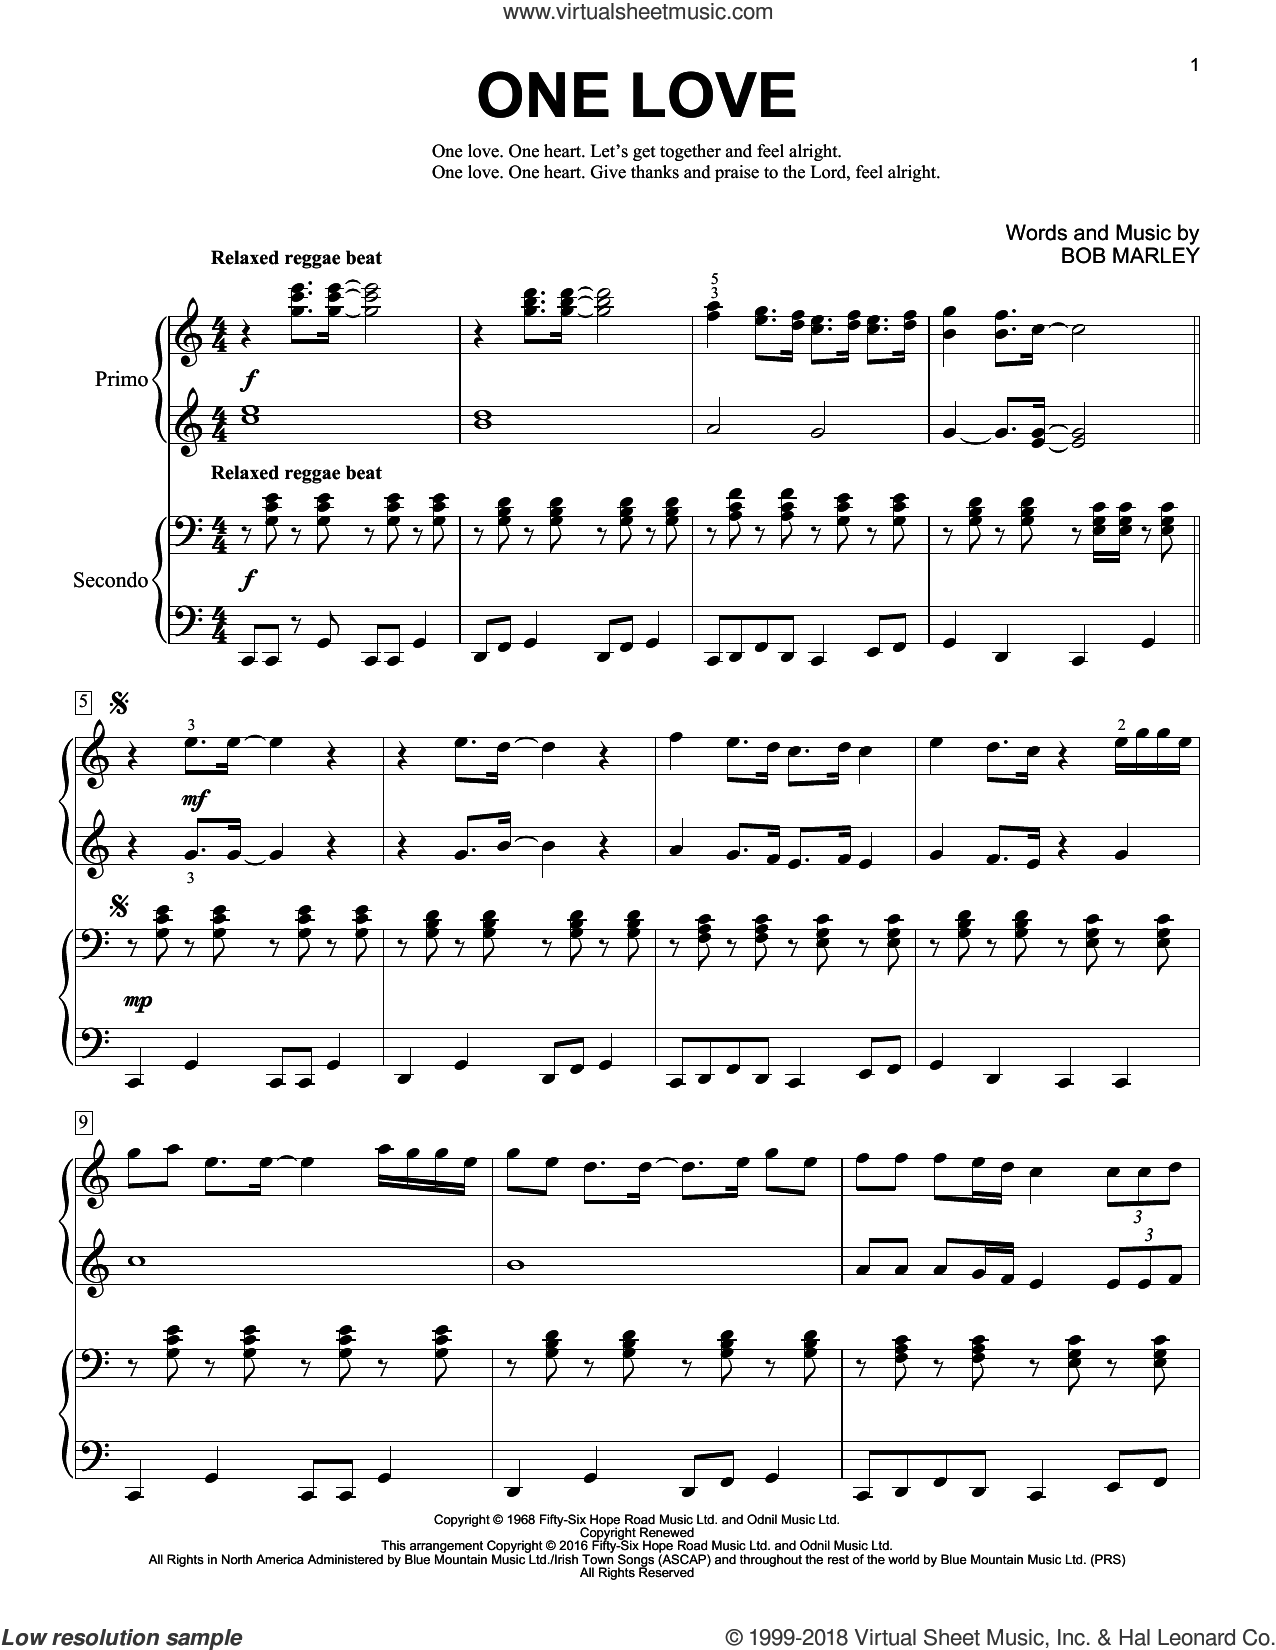 One Love sheet music for piano four hands by Bob Marley and Brent Edstrom, intermediate skill level